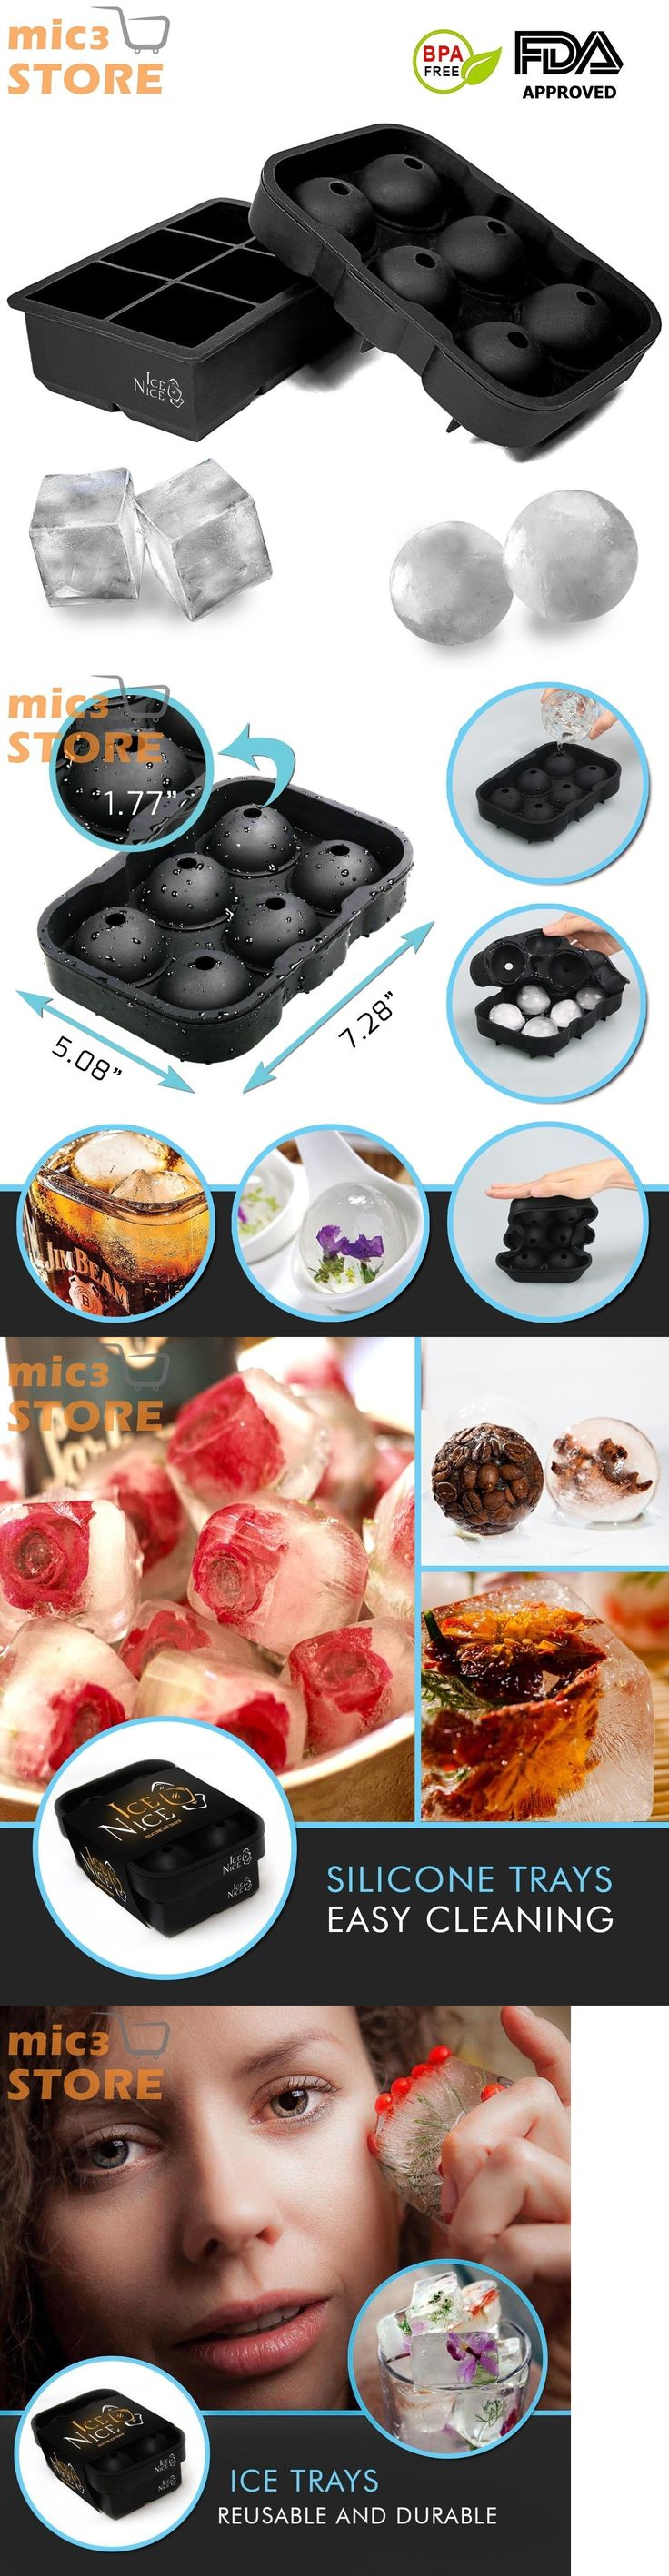 Ice Cube Trays and Molds 177015: 2 Silicone Ice Cube Trays Combo 6 Giant 2 Cubes + 6 Ice Balls 1.75 Cold Drinks -> BUY IT NOW ONLY: $43.92 on eBay!